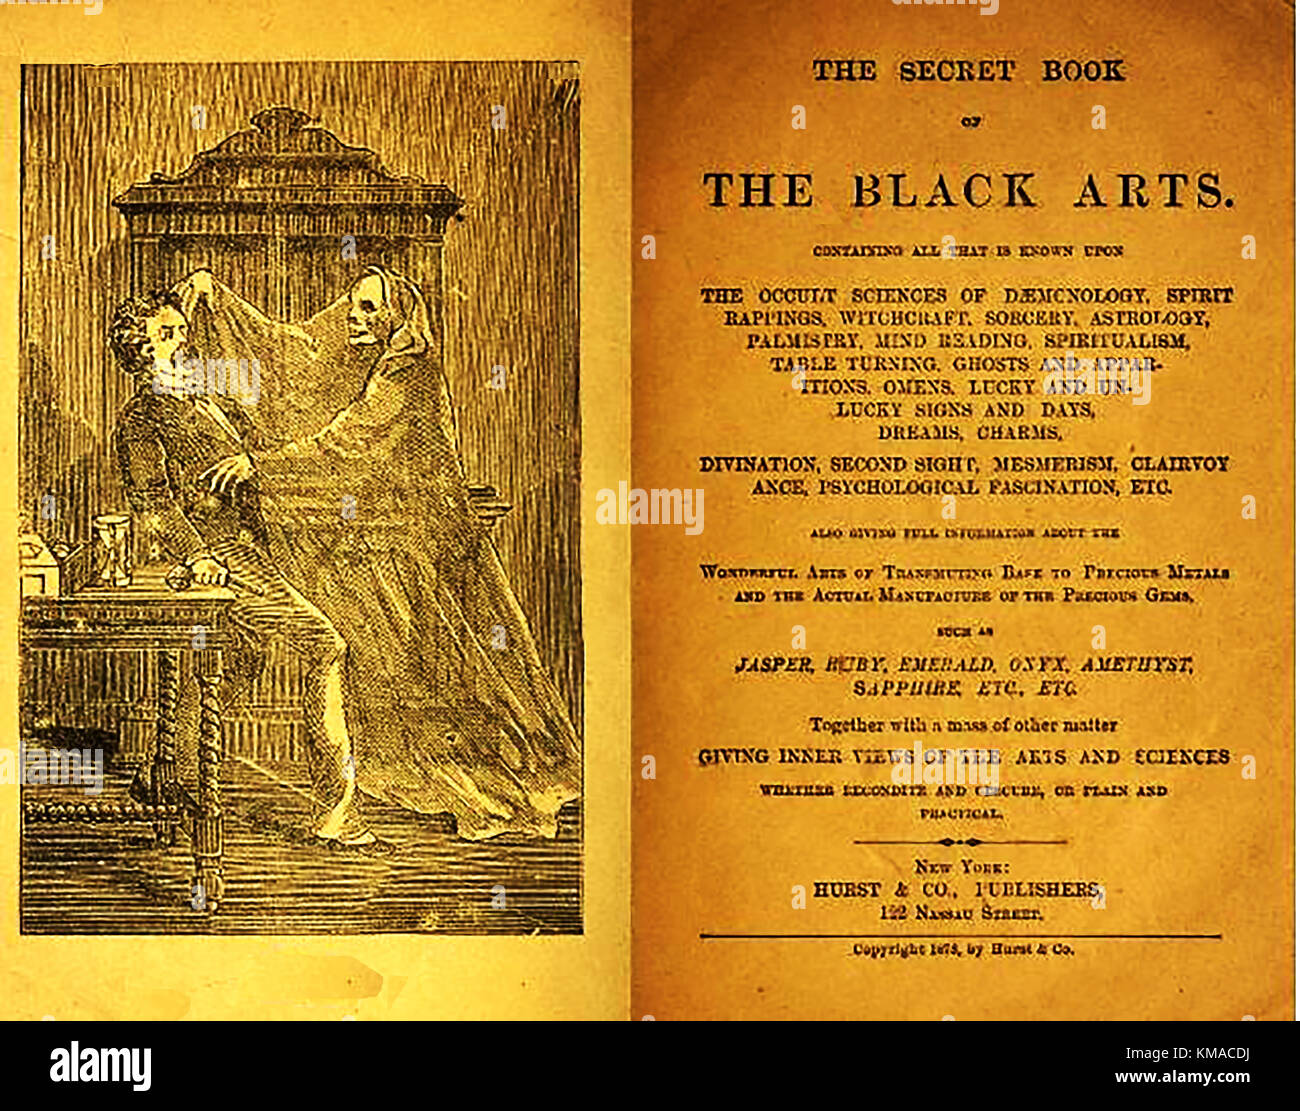 Occult Sciences Stock Photos & Occult Sciences Stock Images